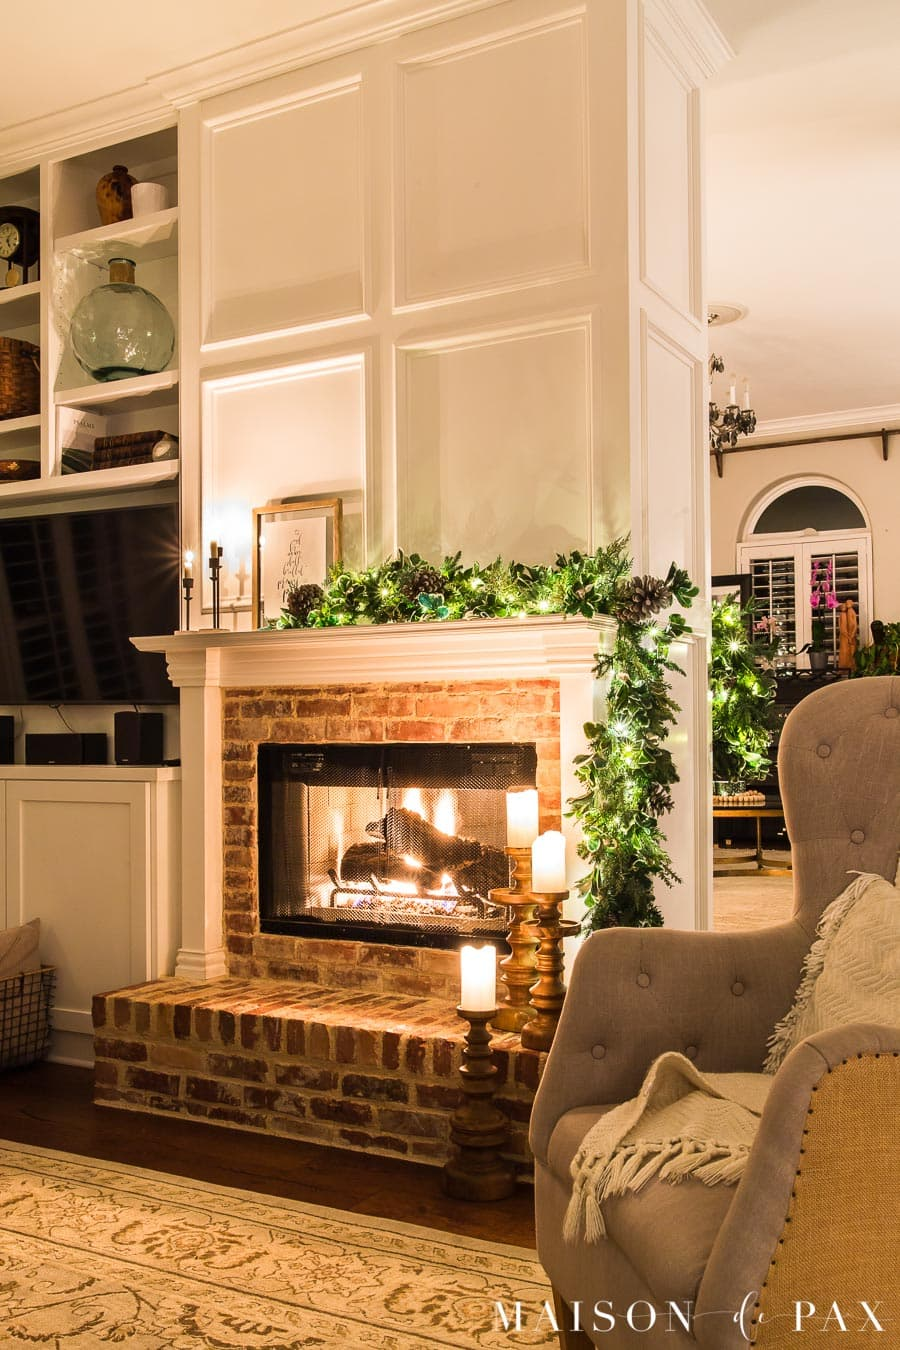 fireplace with asymmetrical garland and candles | Maison de Pax